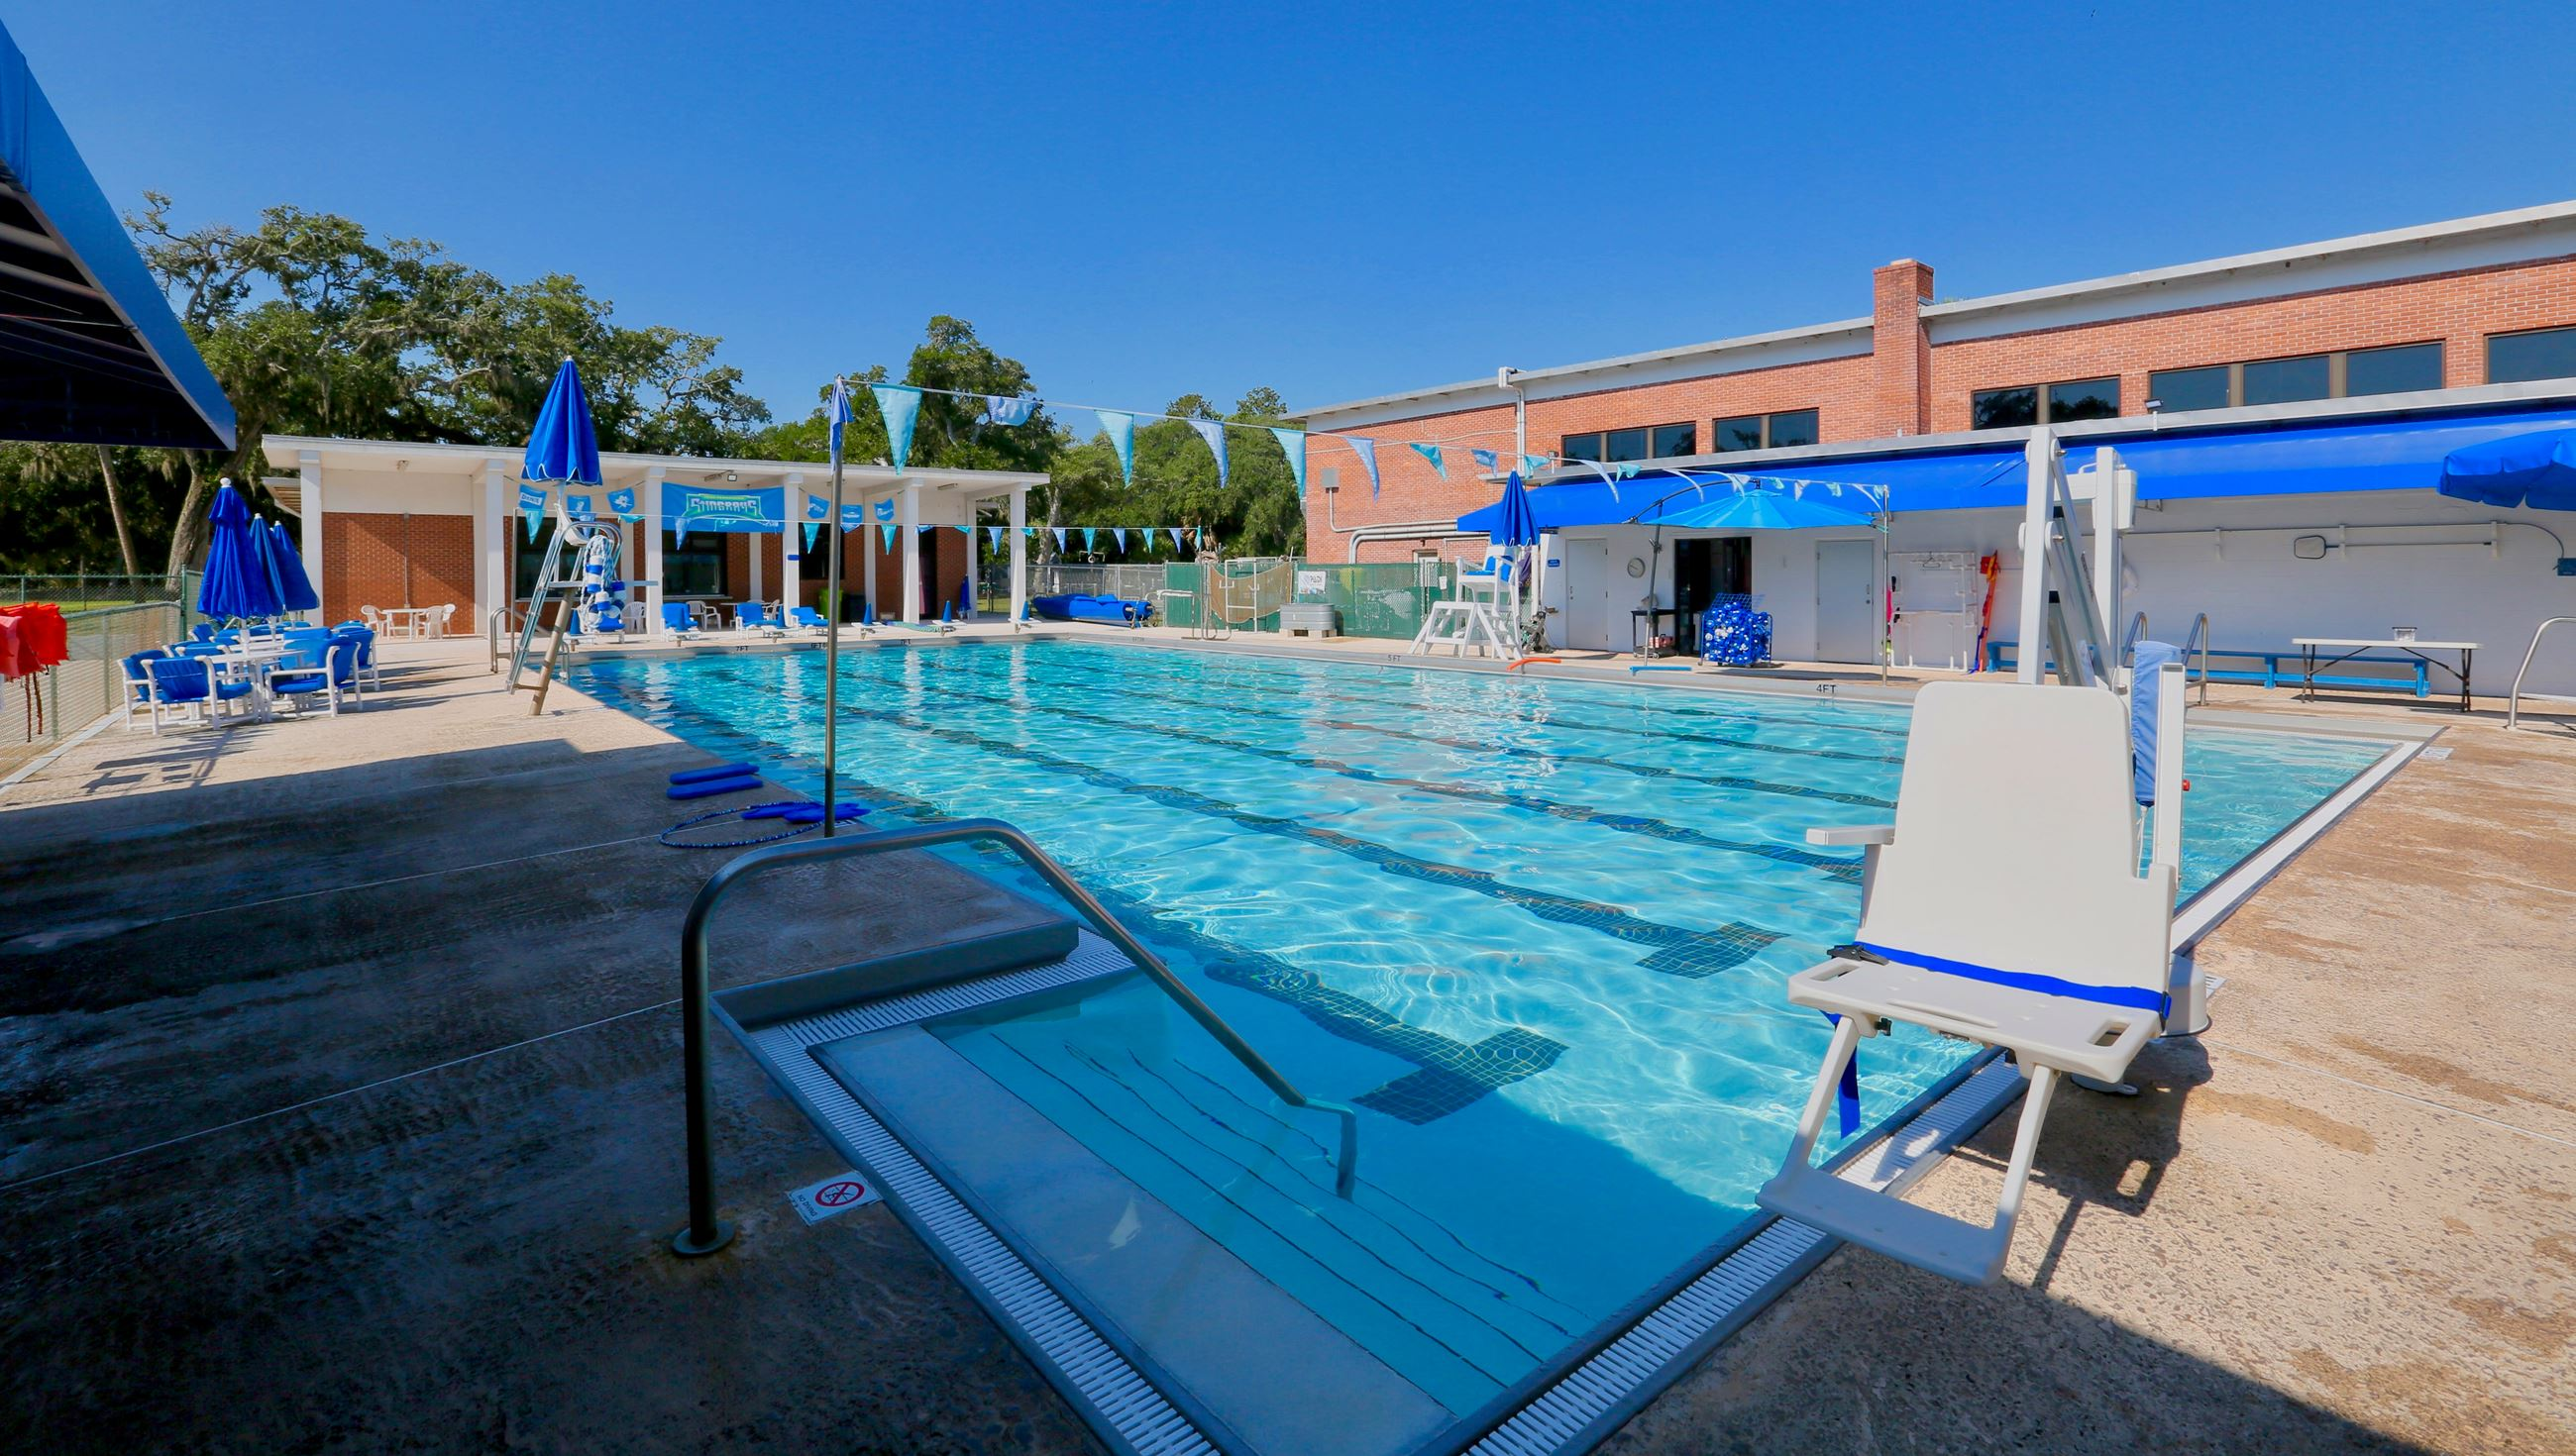 Atlantic Recreation Center Pool (3)